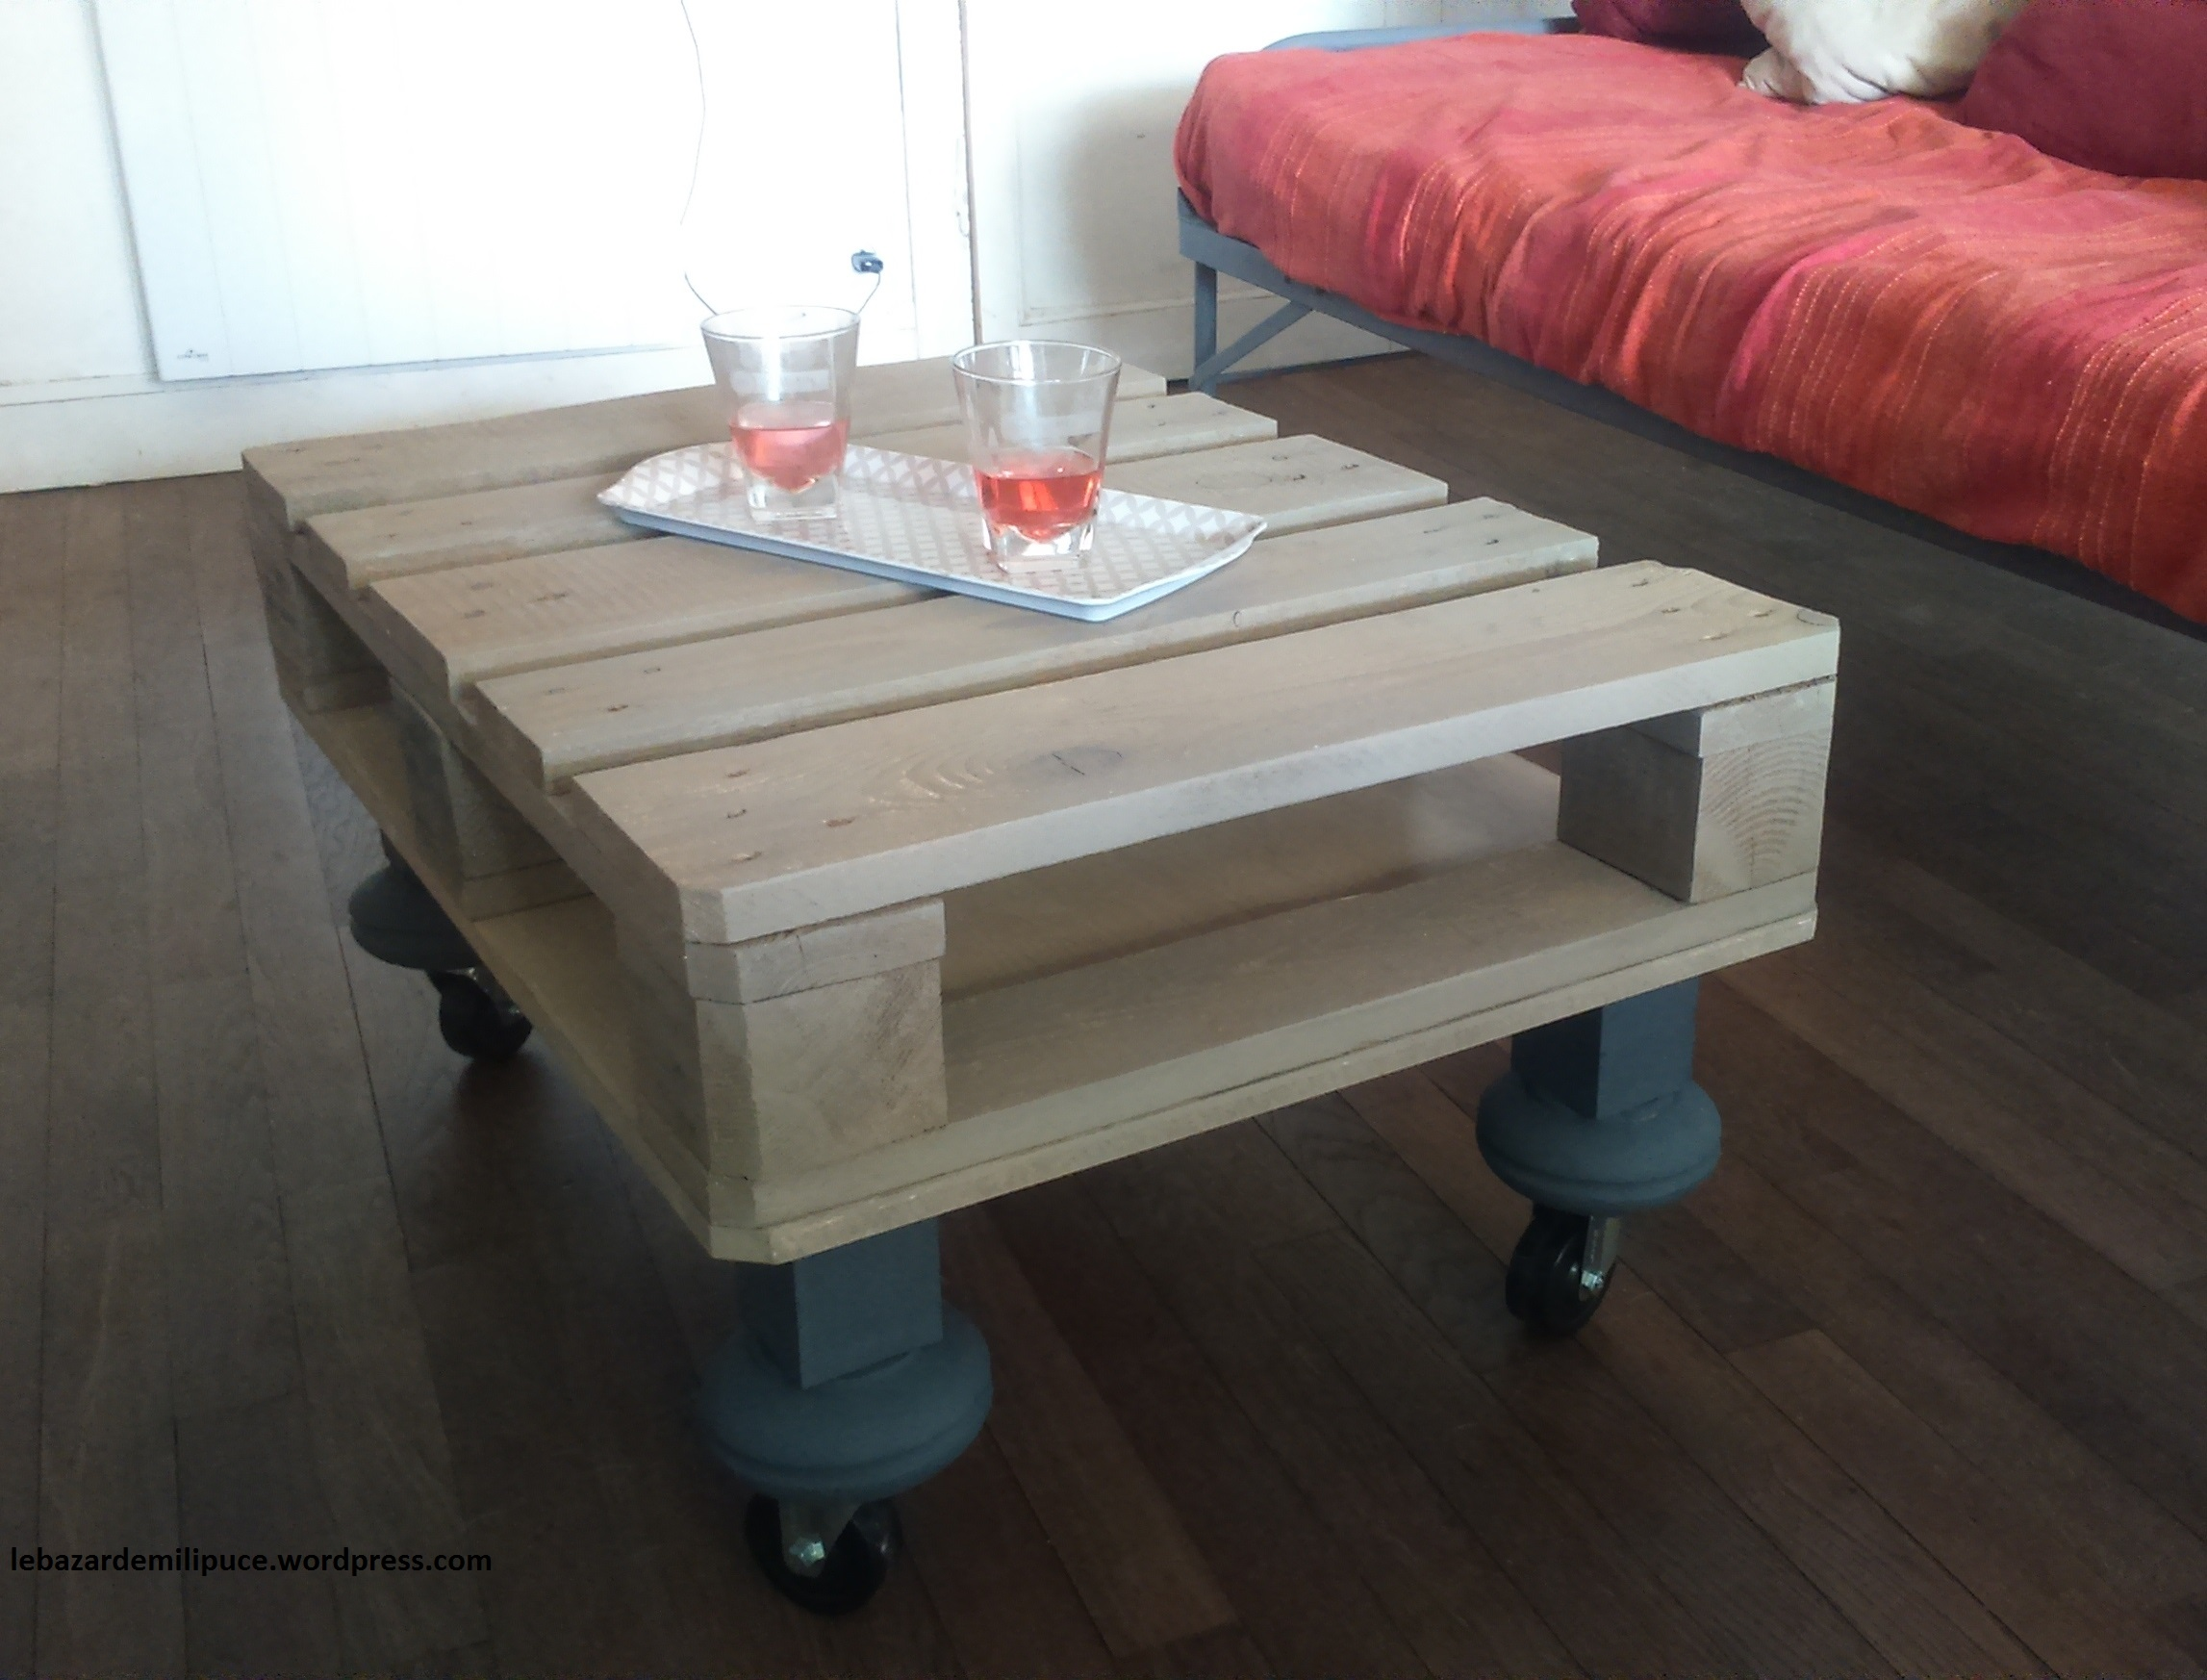 Enfin Europe Basse Palette Transformé Ma En J'ai Table Ygyb76fv